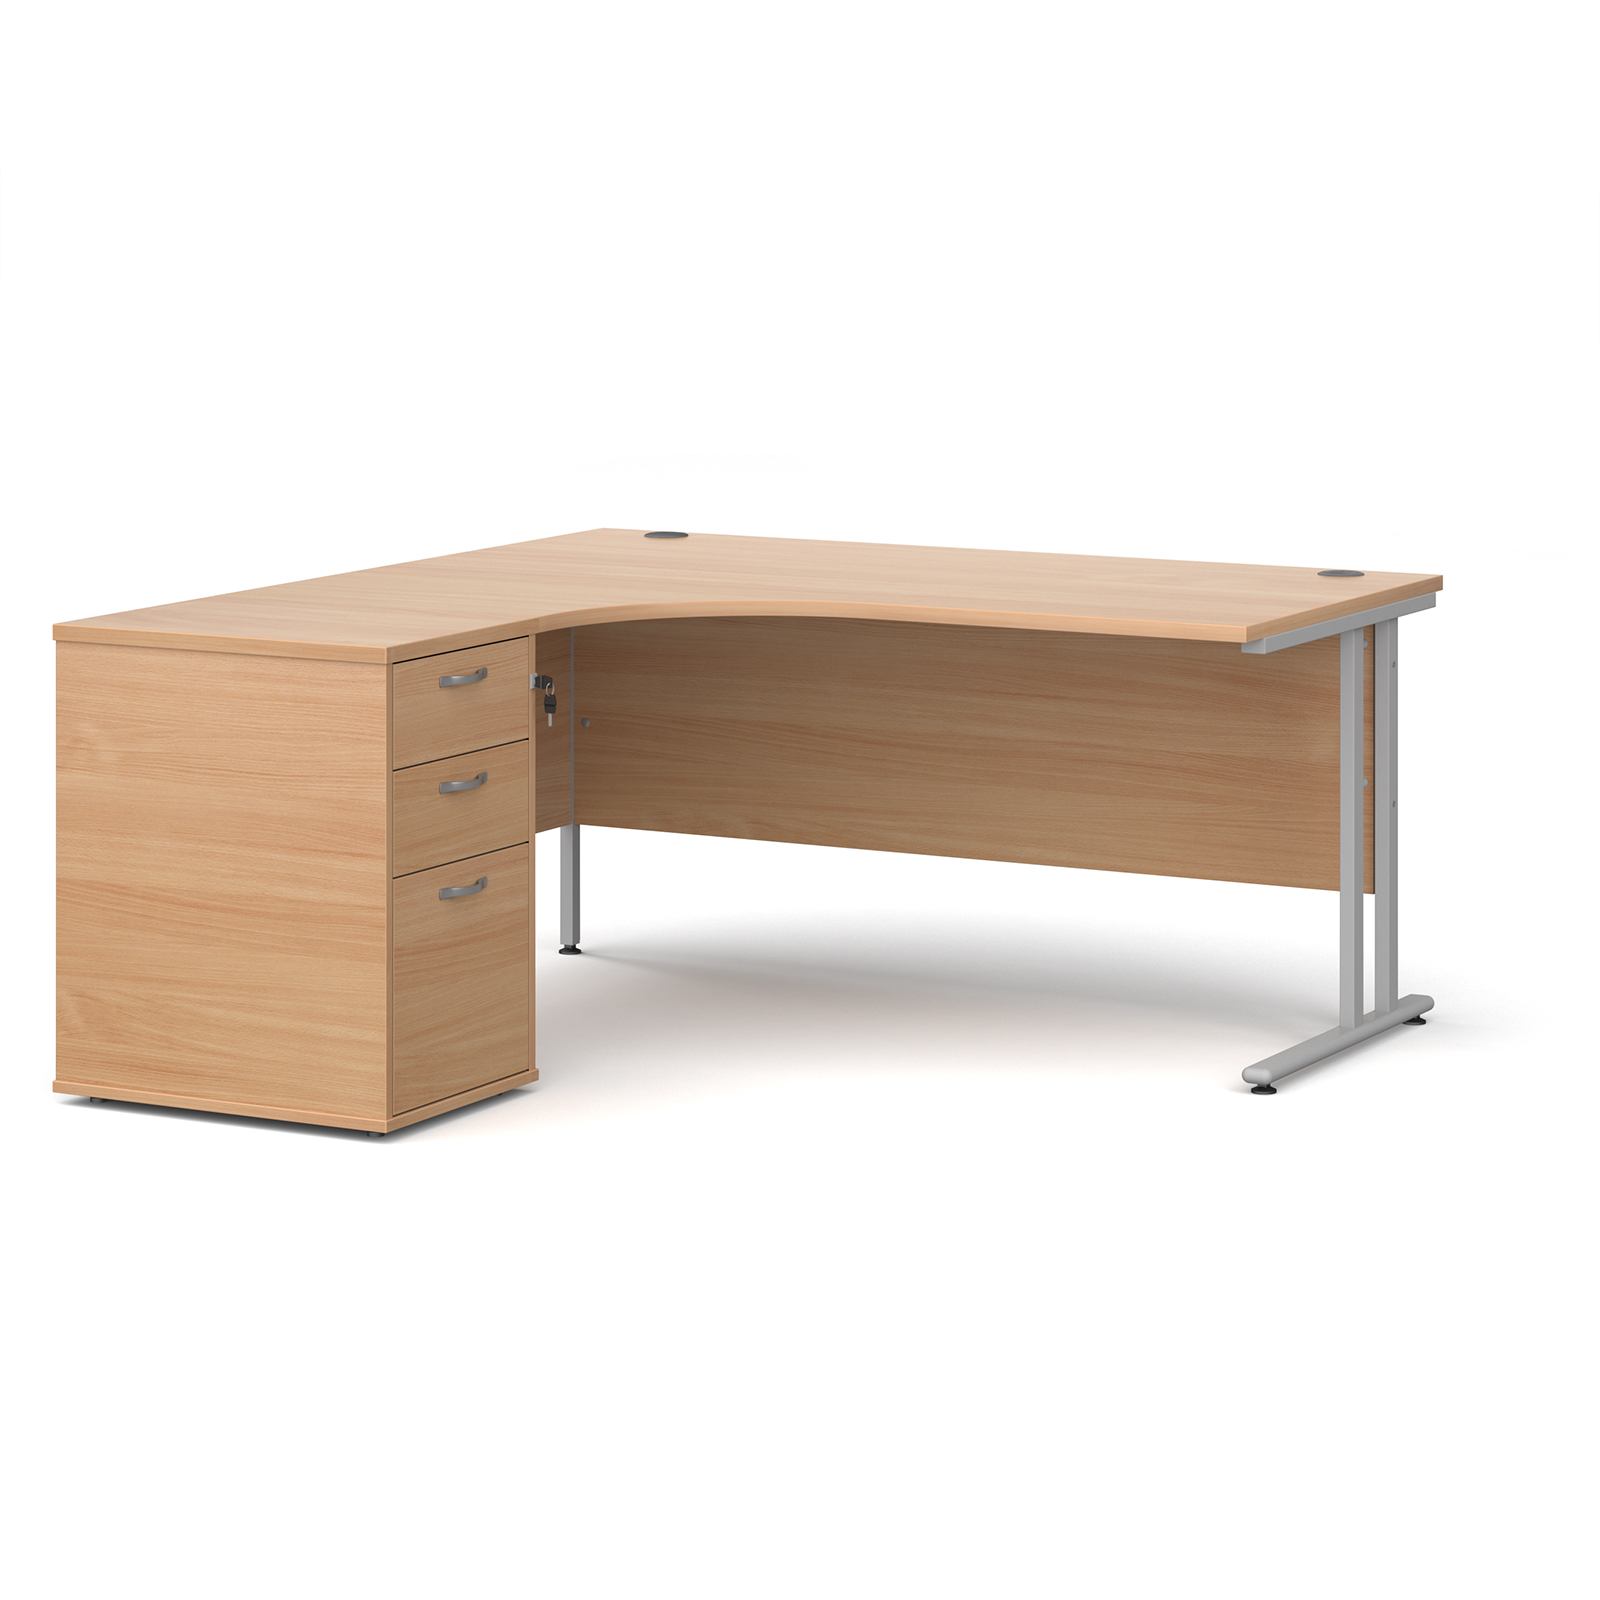 Left Handed Maestro 25 left hand ergonomic desk 1600mm with silver cantilever frame and desk high pedestal - beech